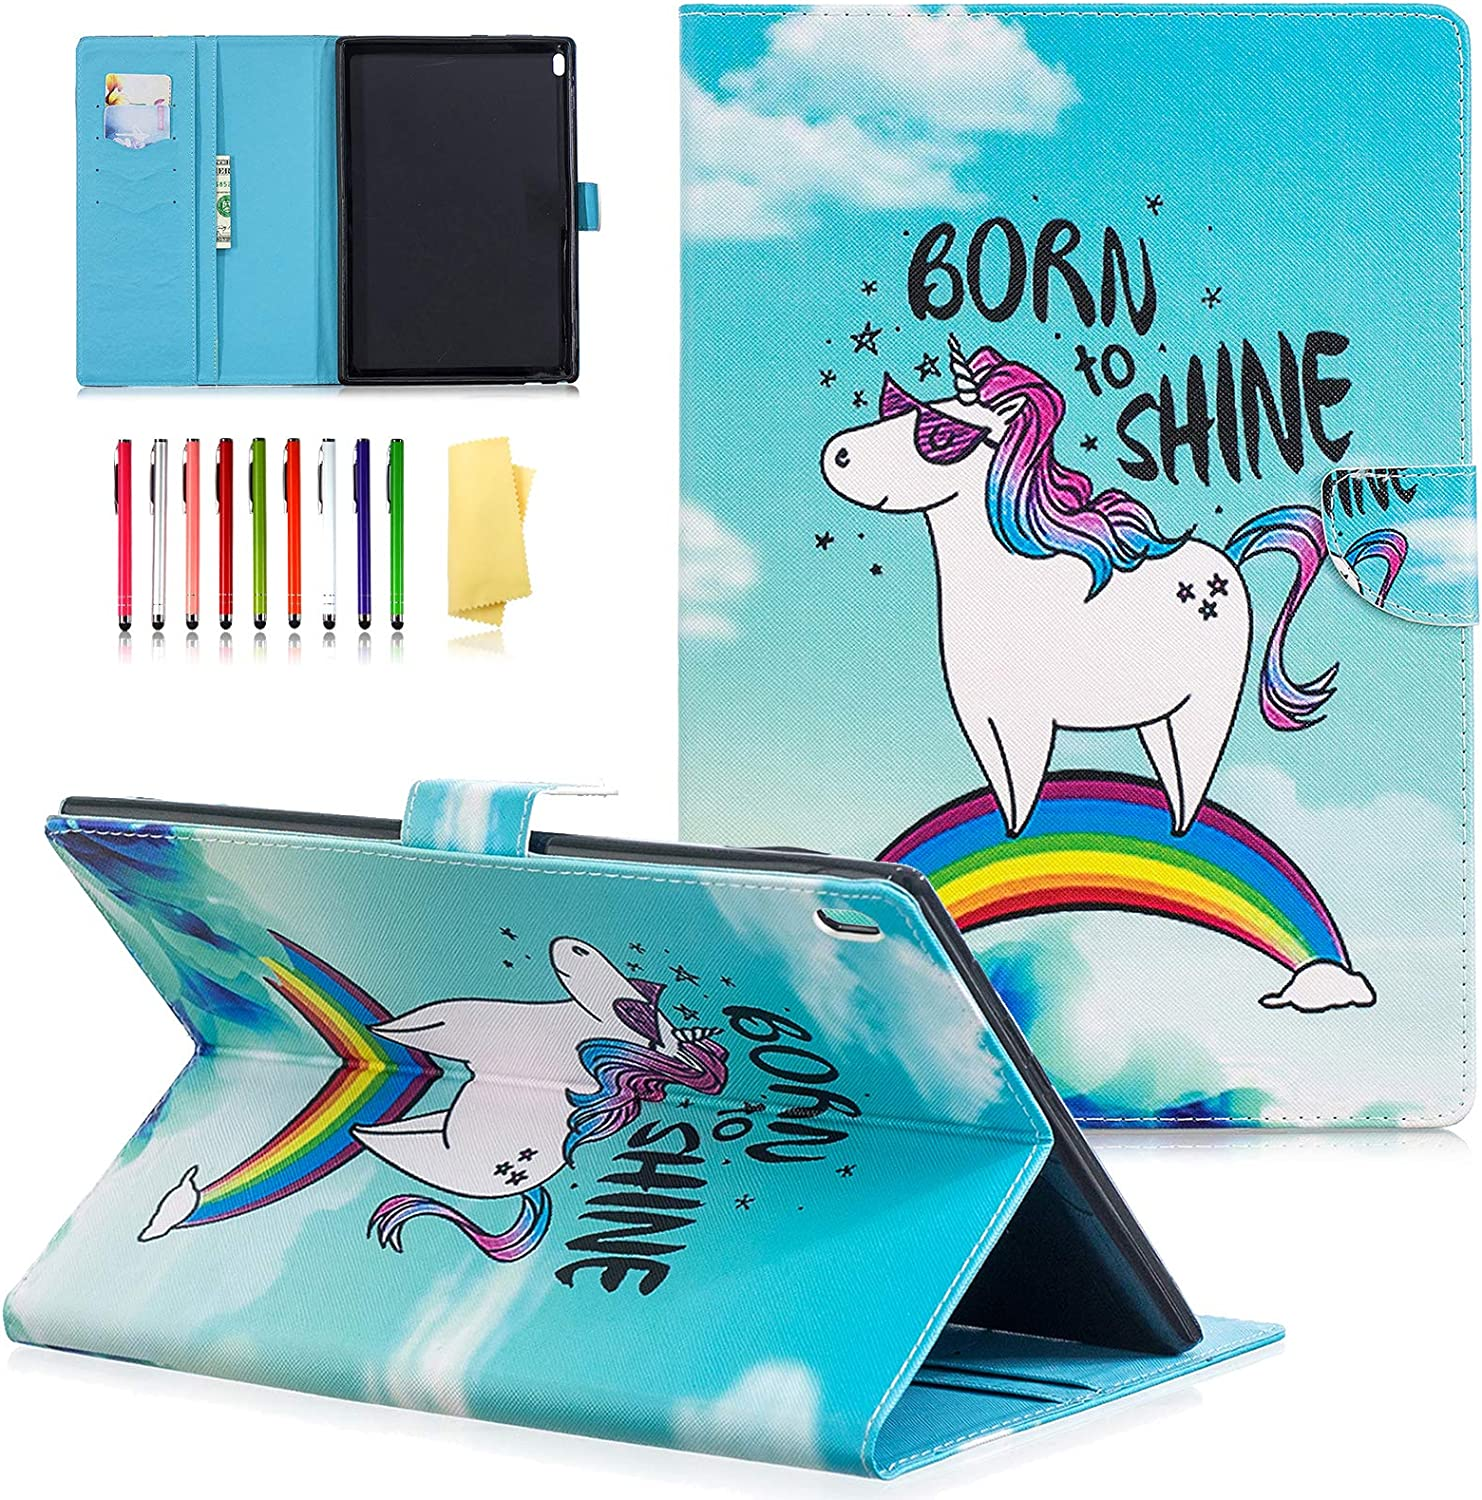 UUcovers Case for Lenovo Tab 4 10 (TB-X304F/TB-X304N) and Tab 4 10 Plus (TB-X704F/TB-X704N) 10 inch, PU Leather Folio Flip Stand Wallet Cover with Pocket Magnetic Closure [Card Slots], Rainbow Horse